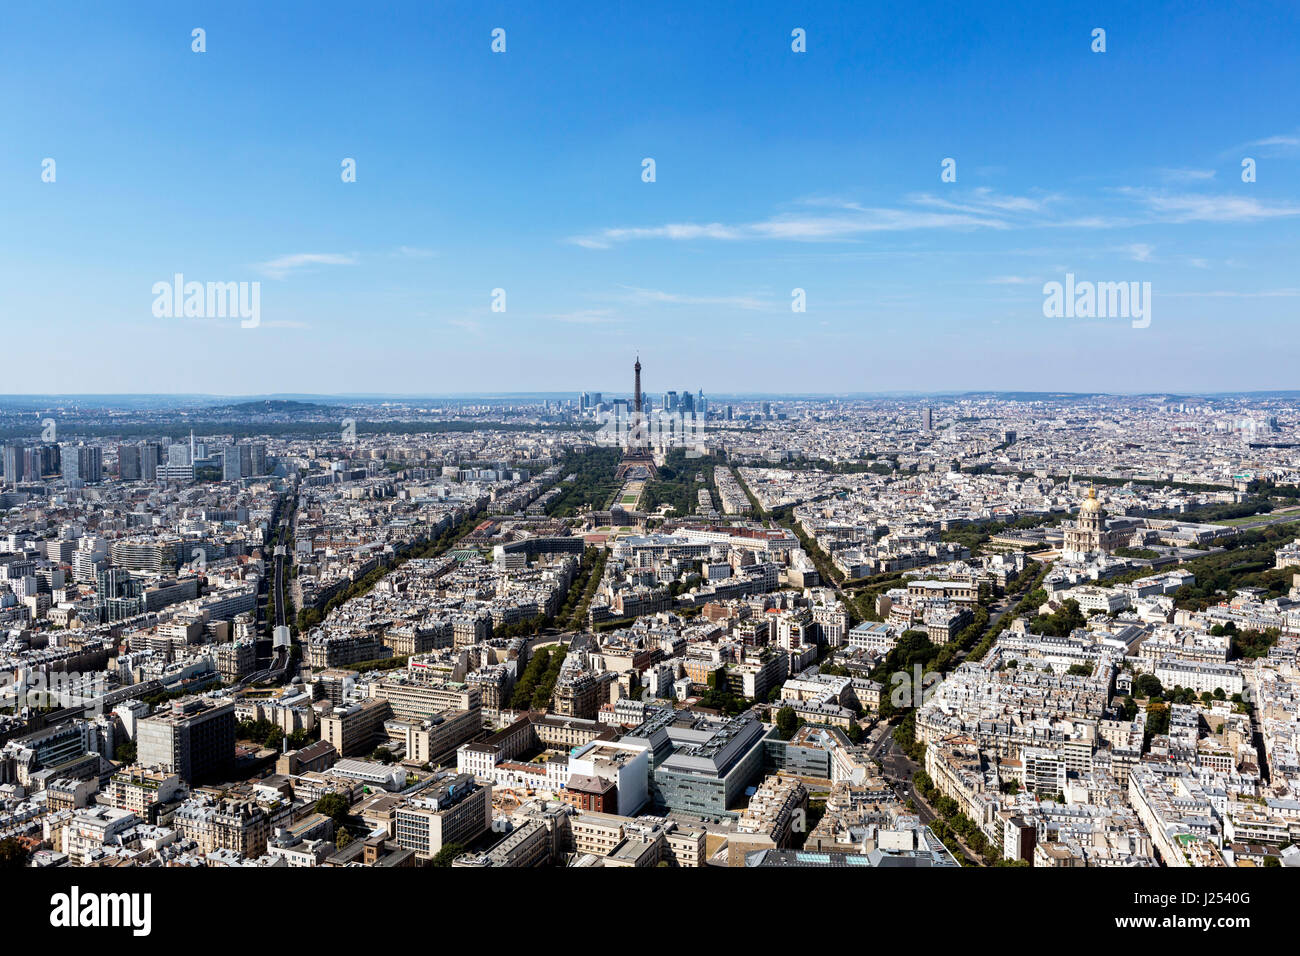 Vue sur Paris, en regardant vers la Tour Eiffel et La Défense, à partir de la plate-forme d'observation Photo Stock